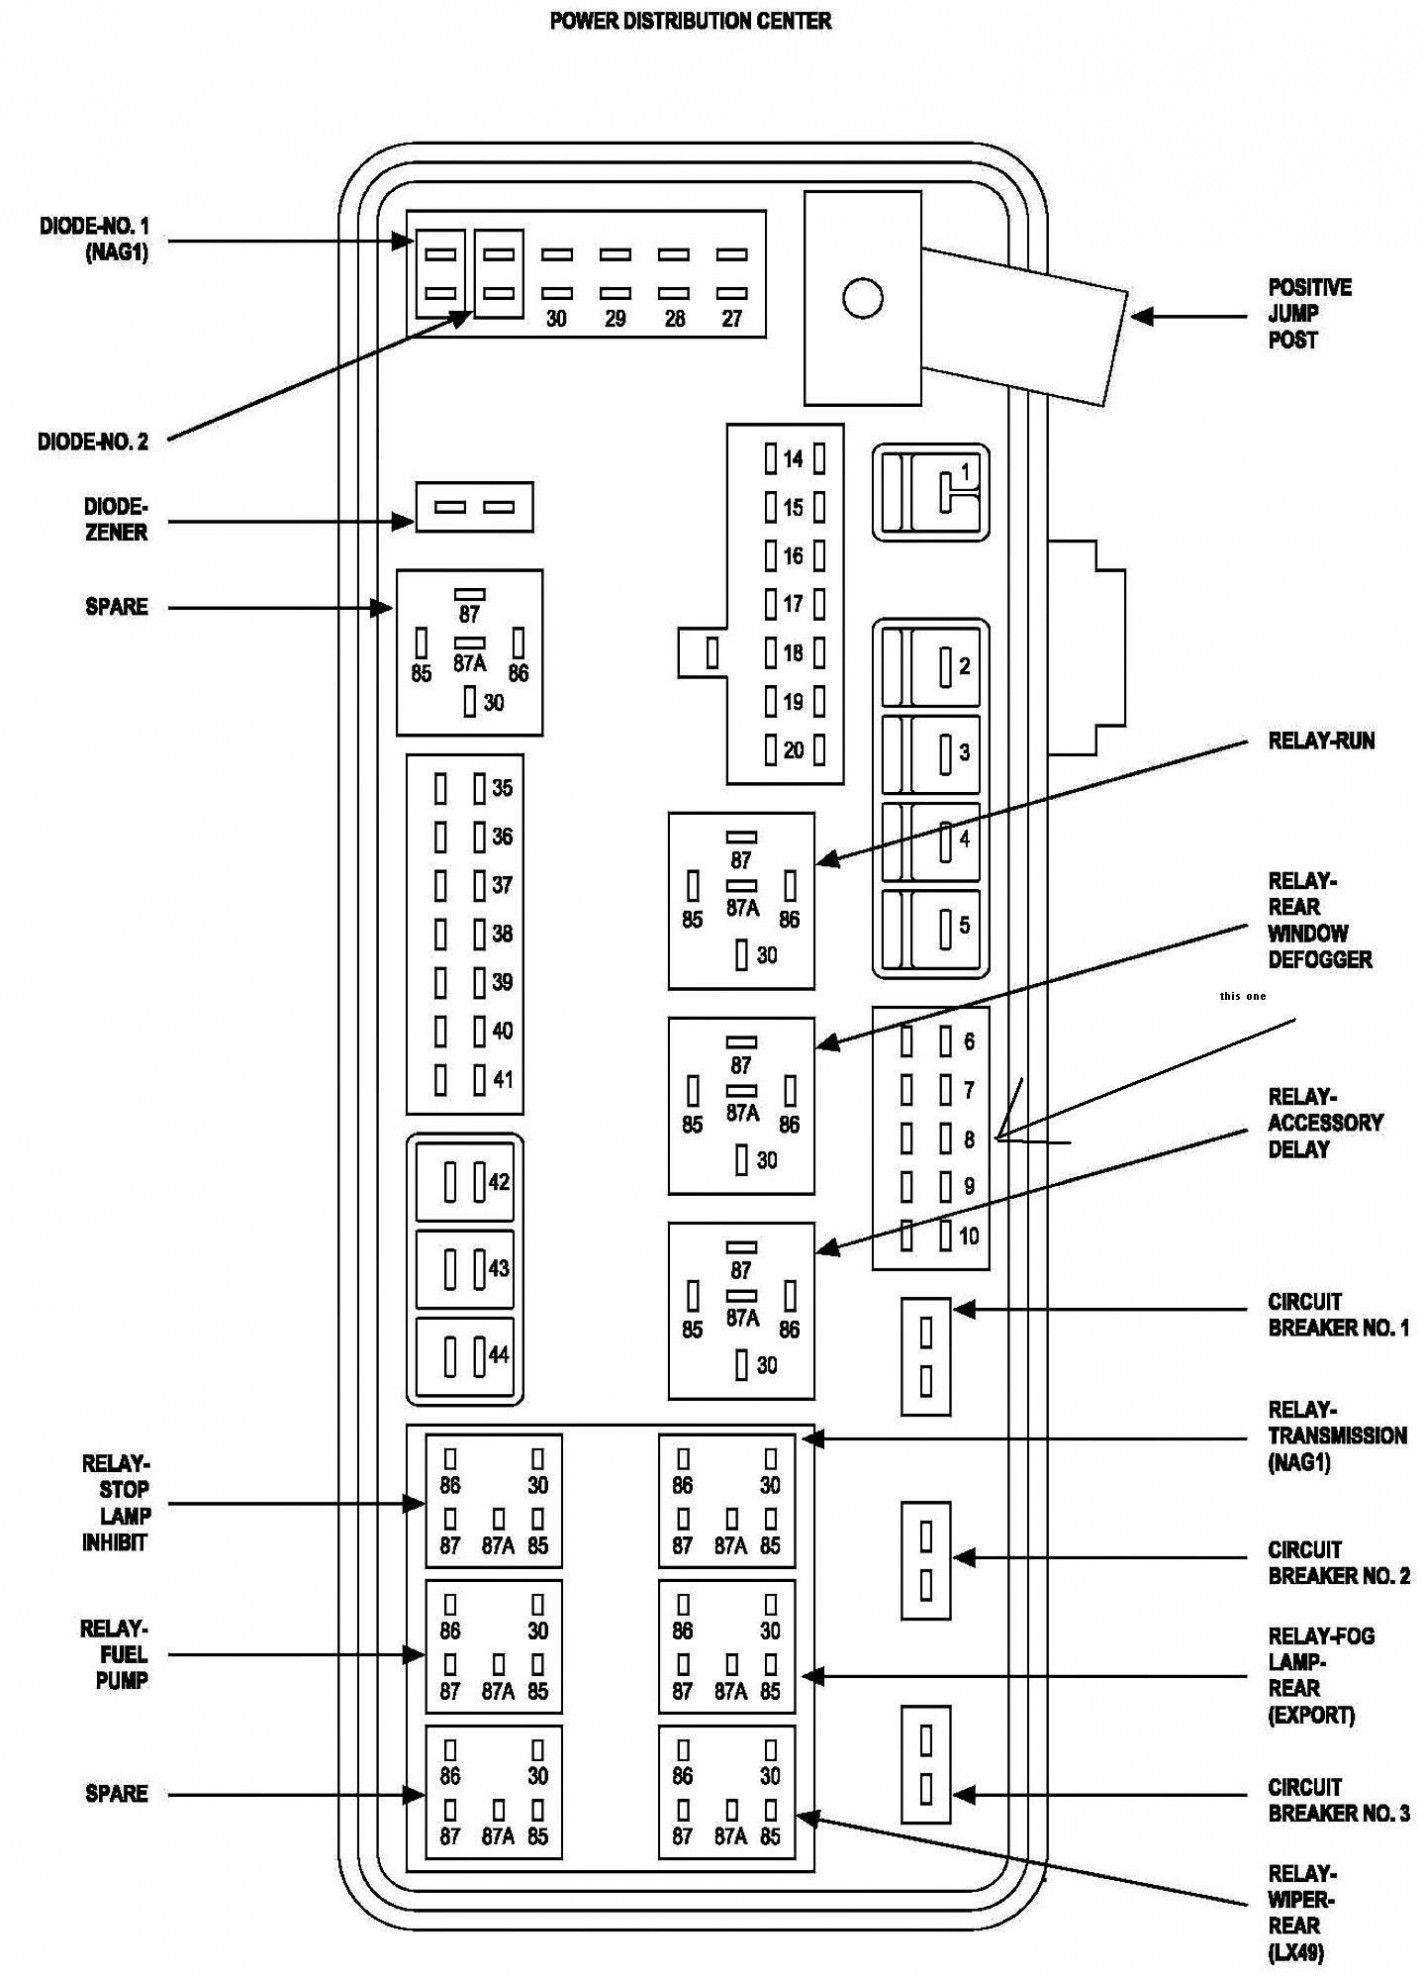 New 2004 Dodge Ram 1500 Infinity Wiring Diagram #diagram #